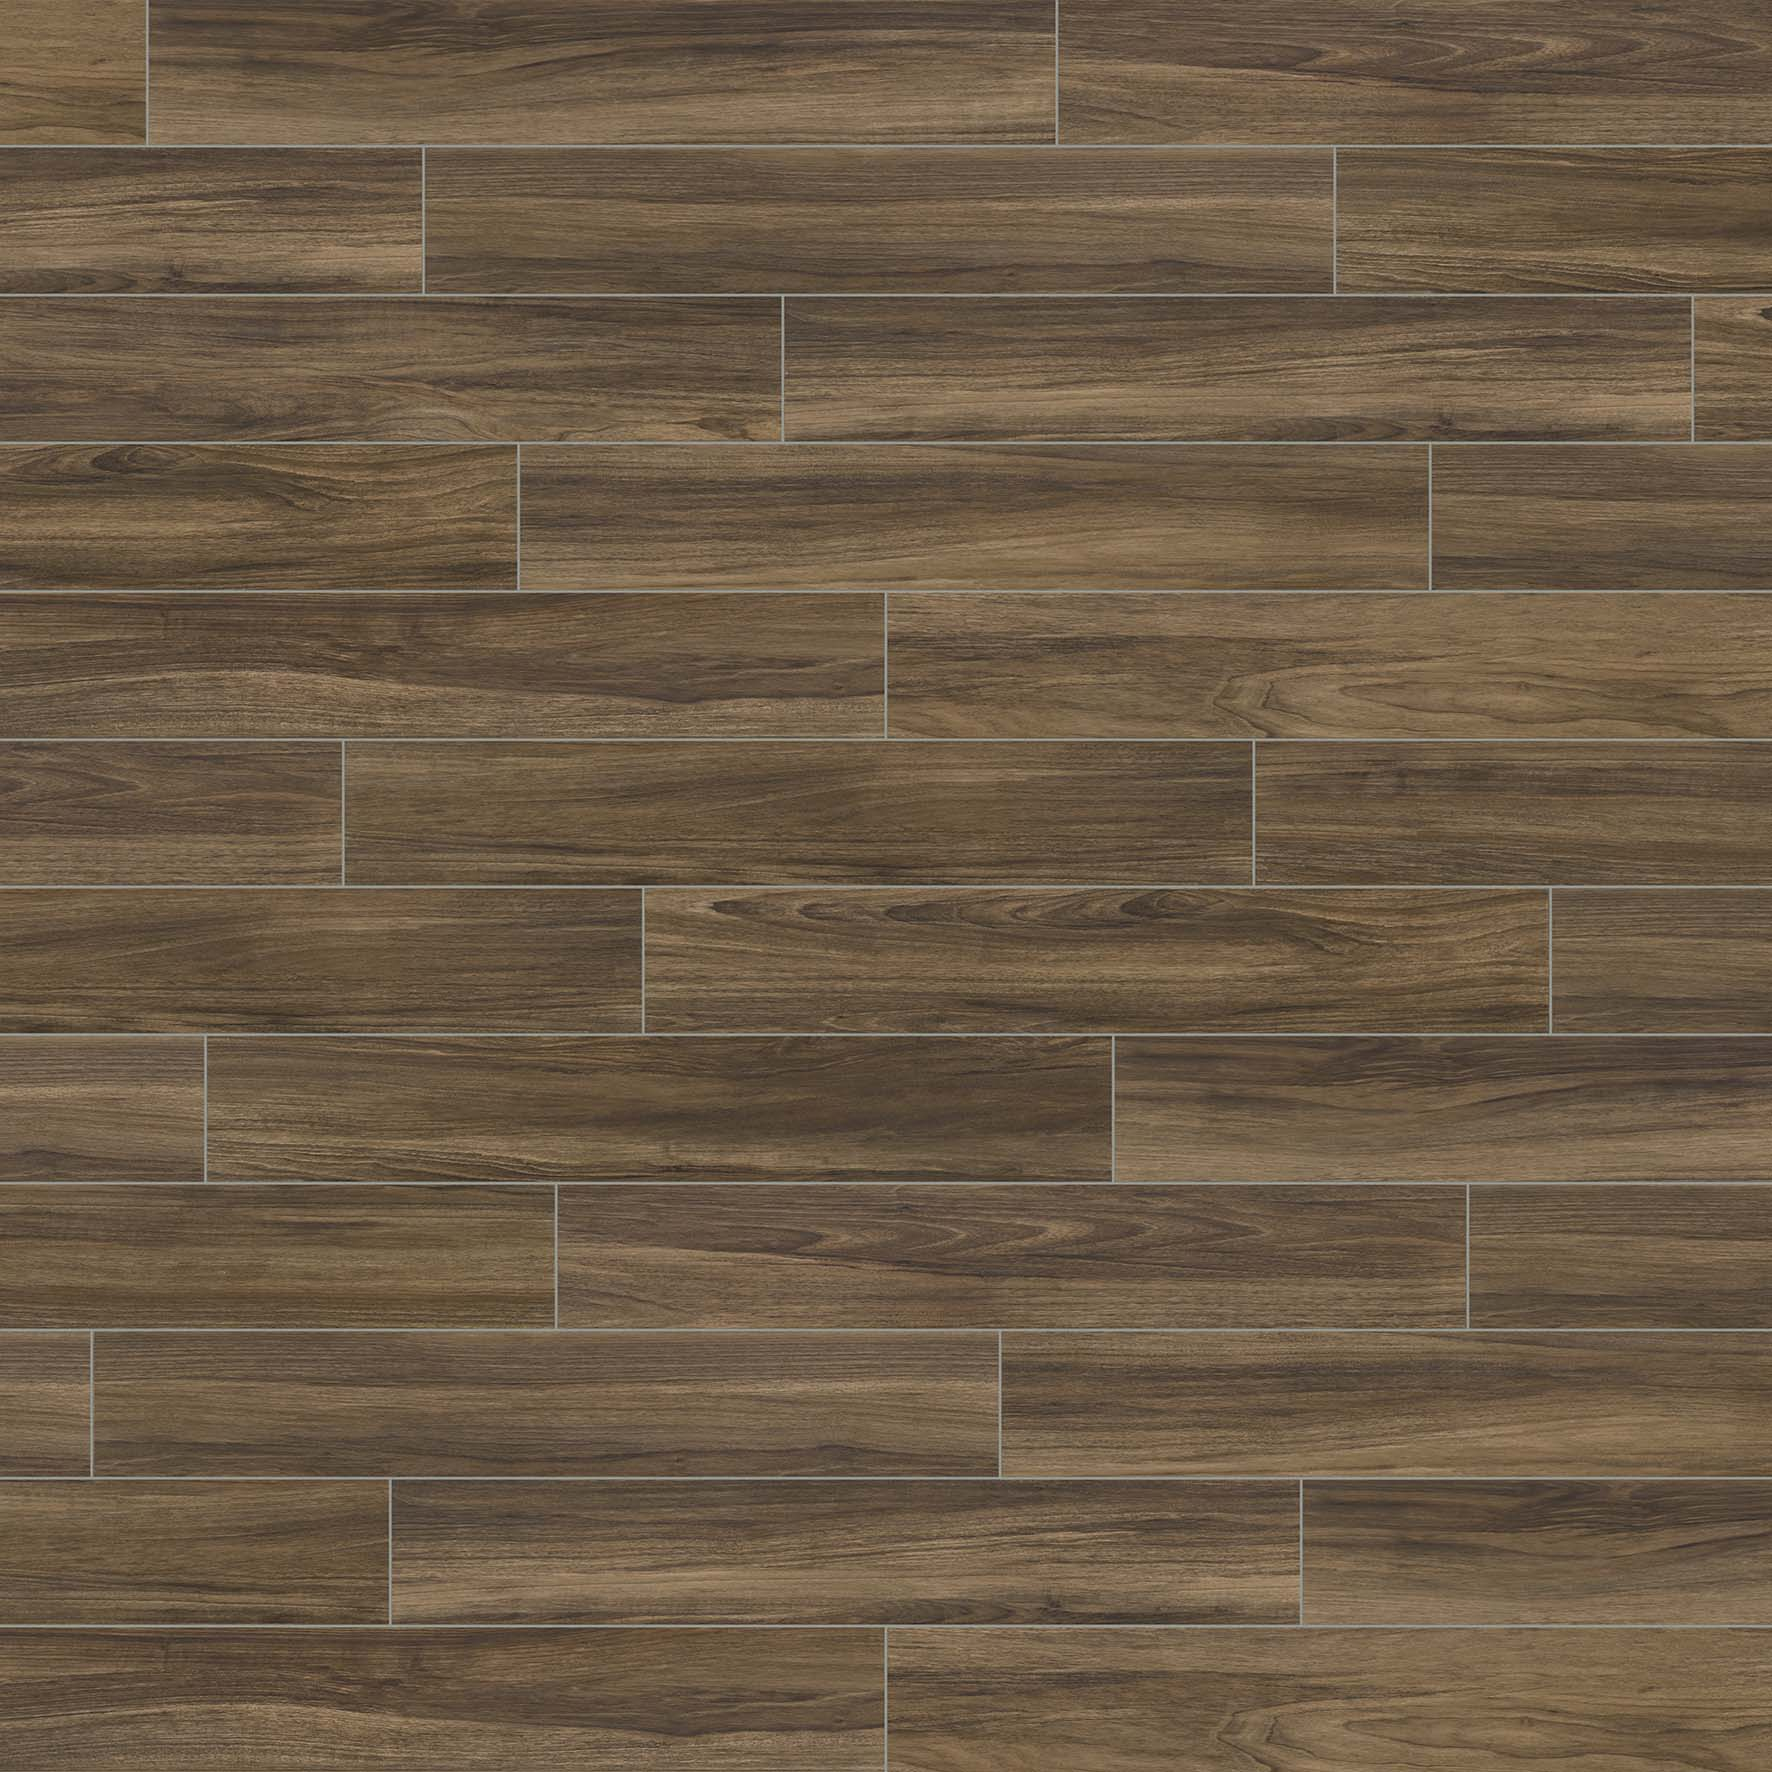 Great Value Wood Effect Tiles Ireland T Tiles Ie Dublin